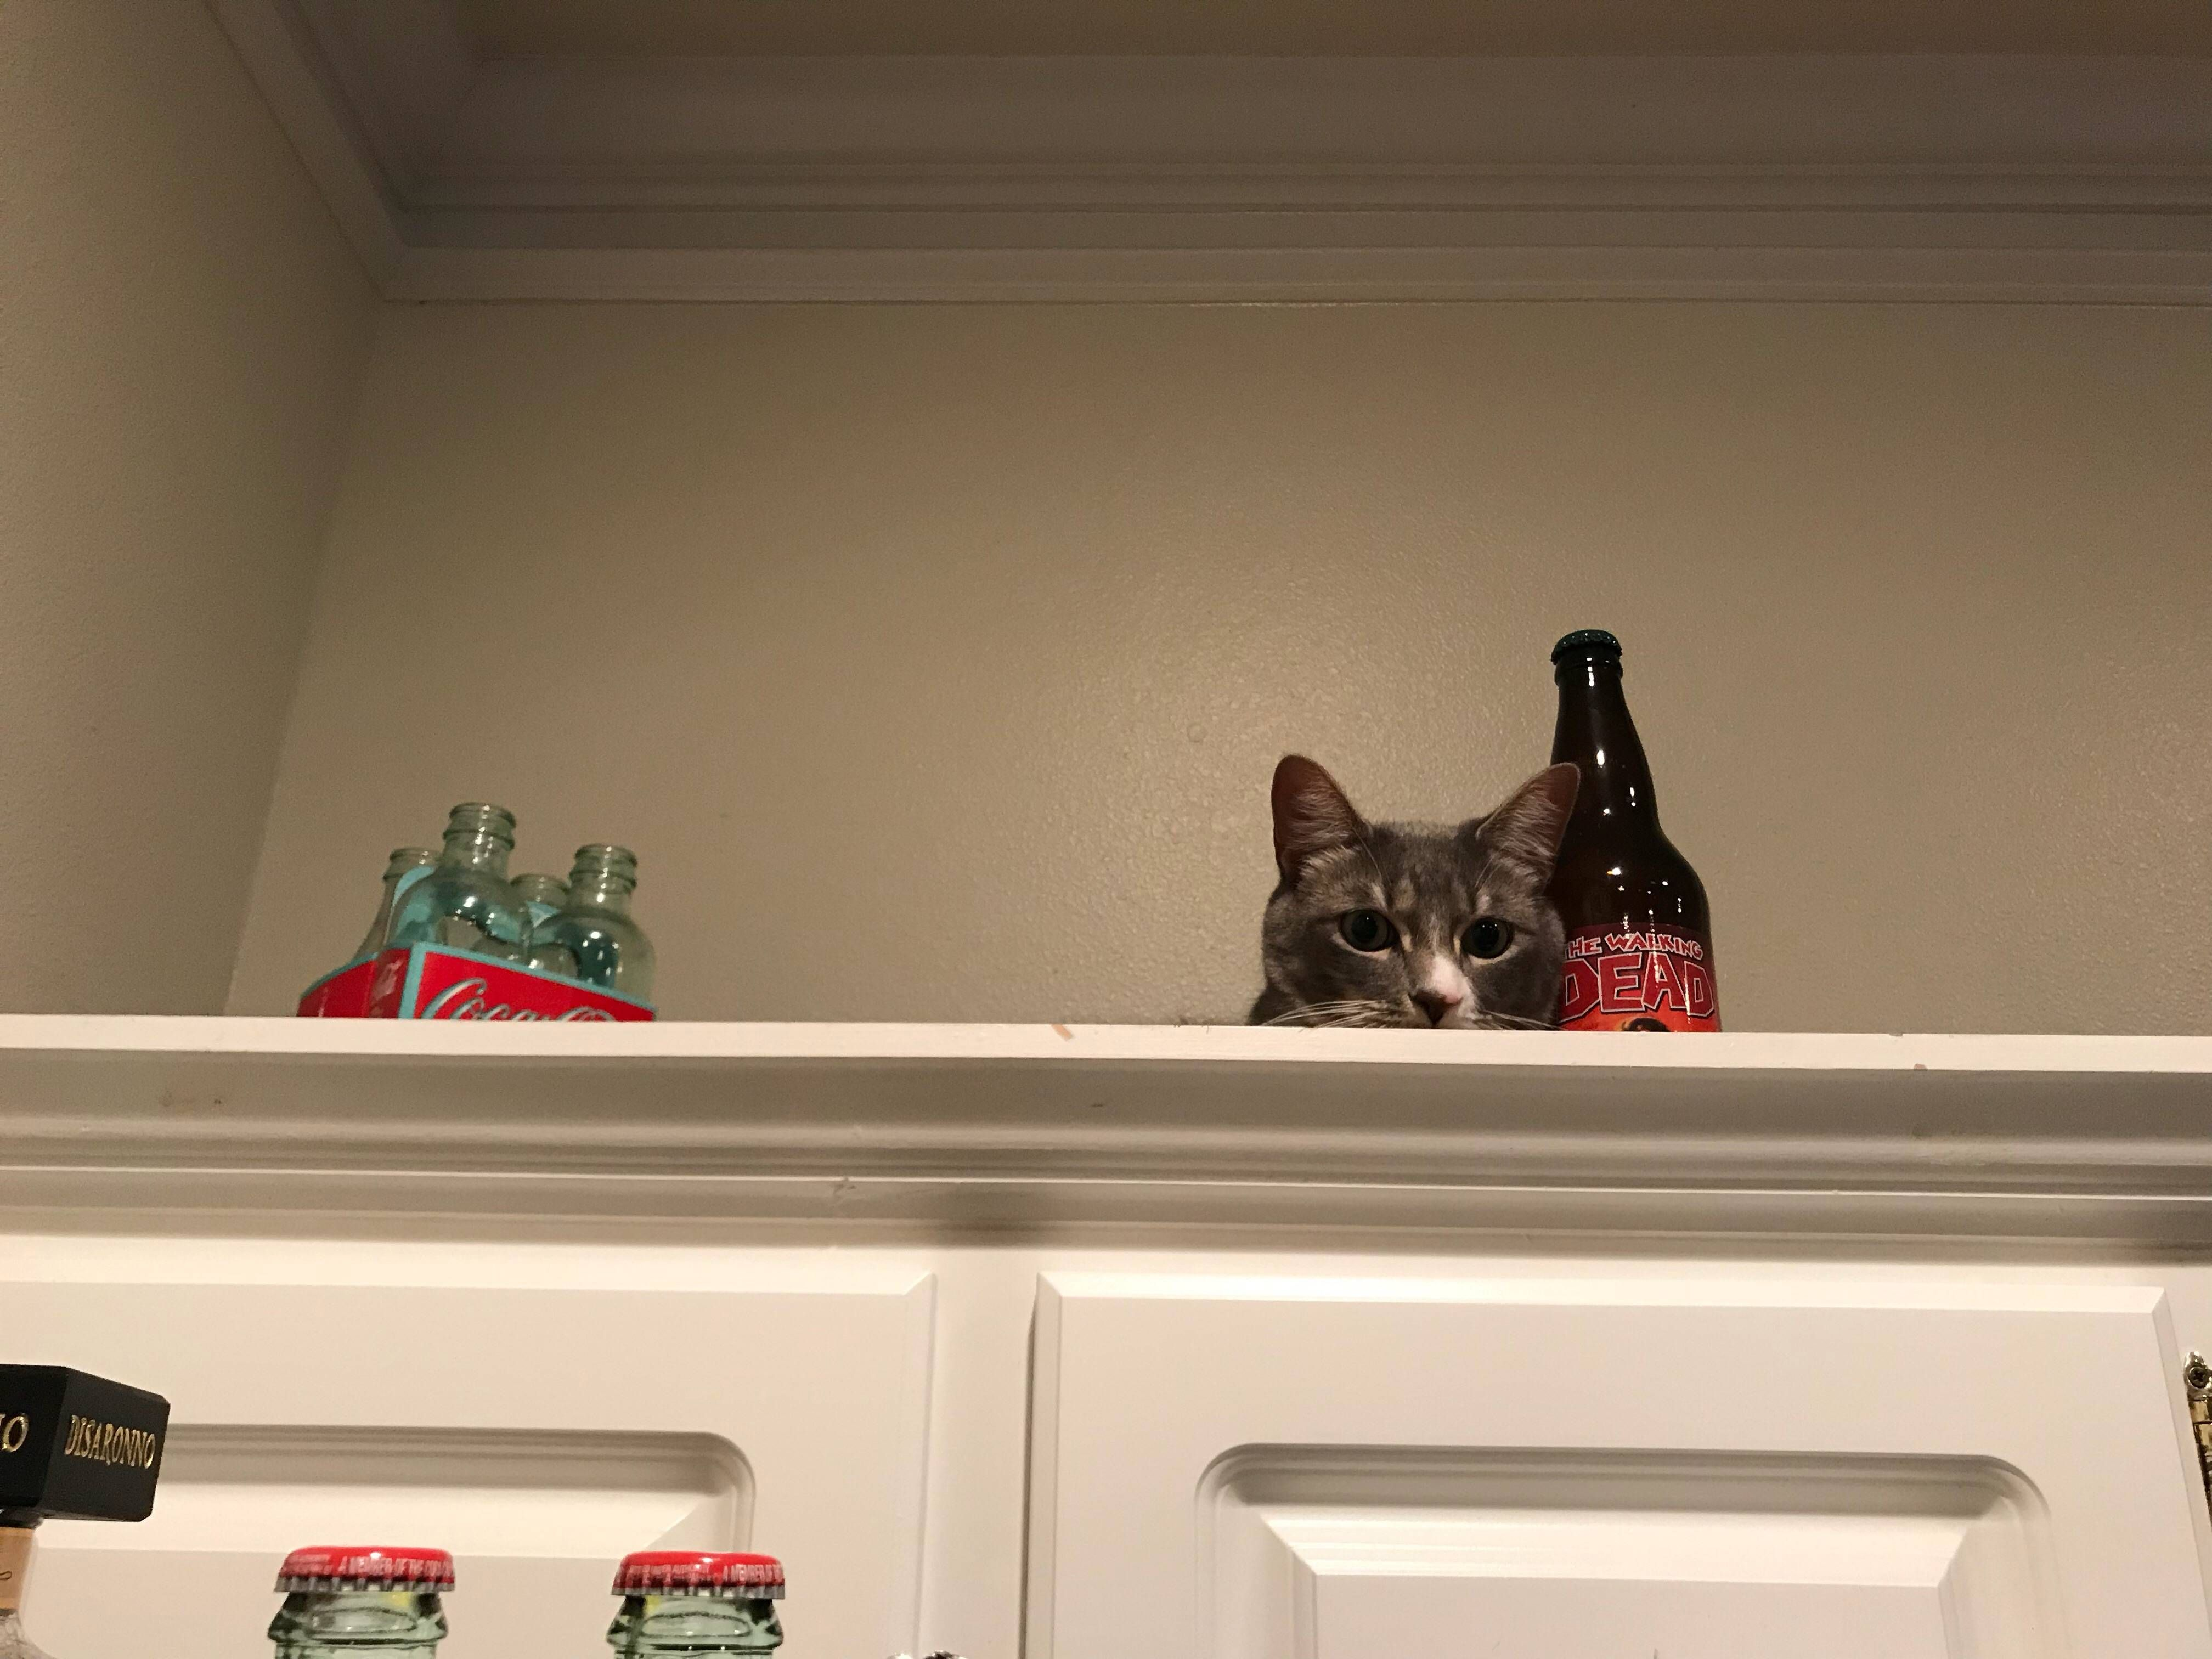 Someone found a new hiding spot hes not supposed to be in